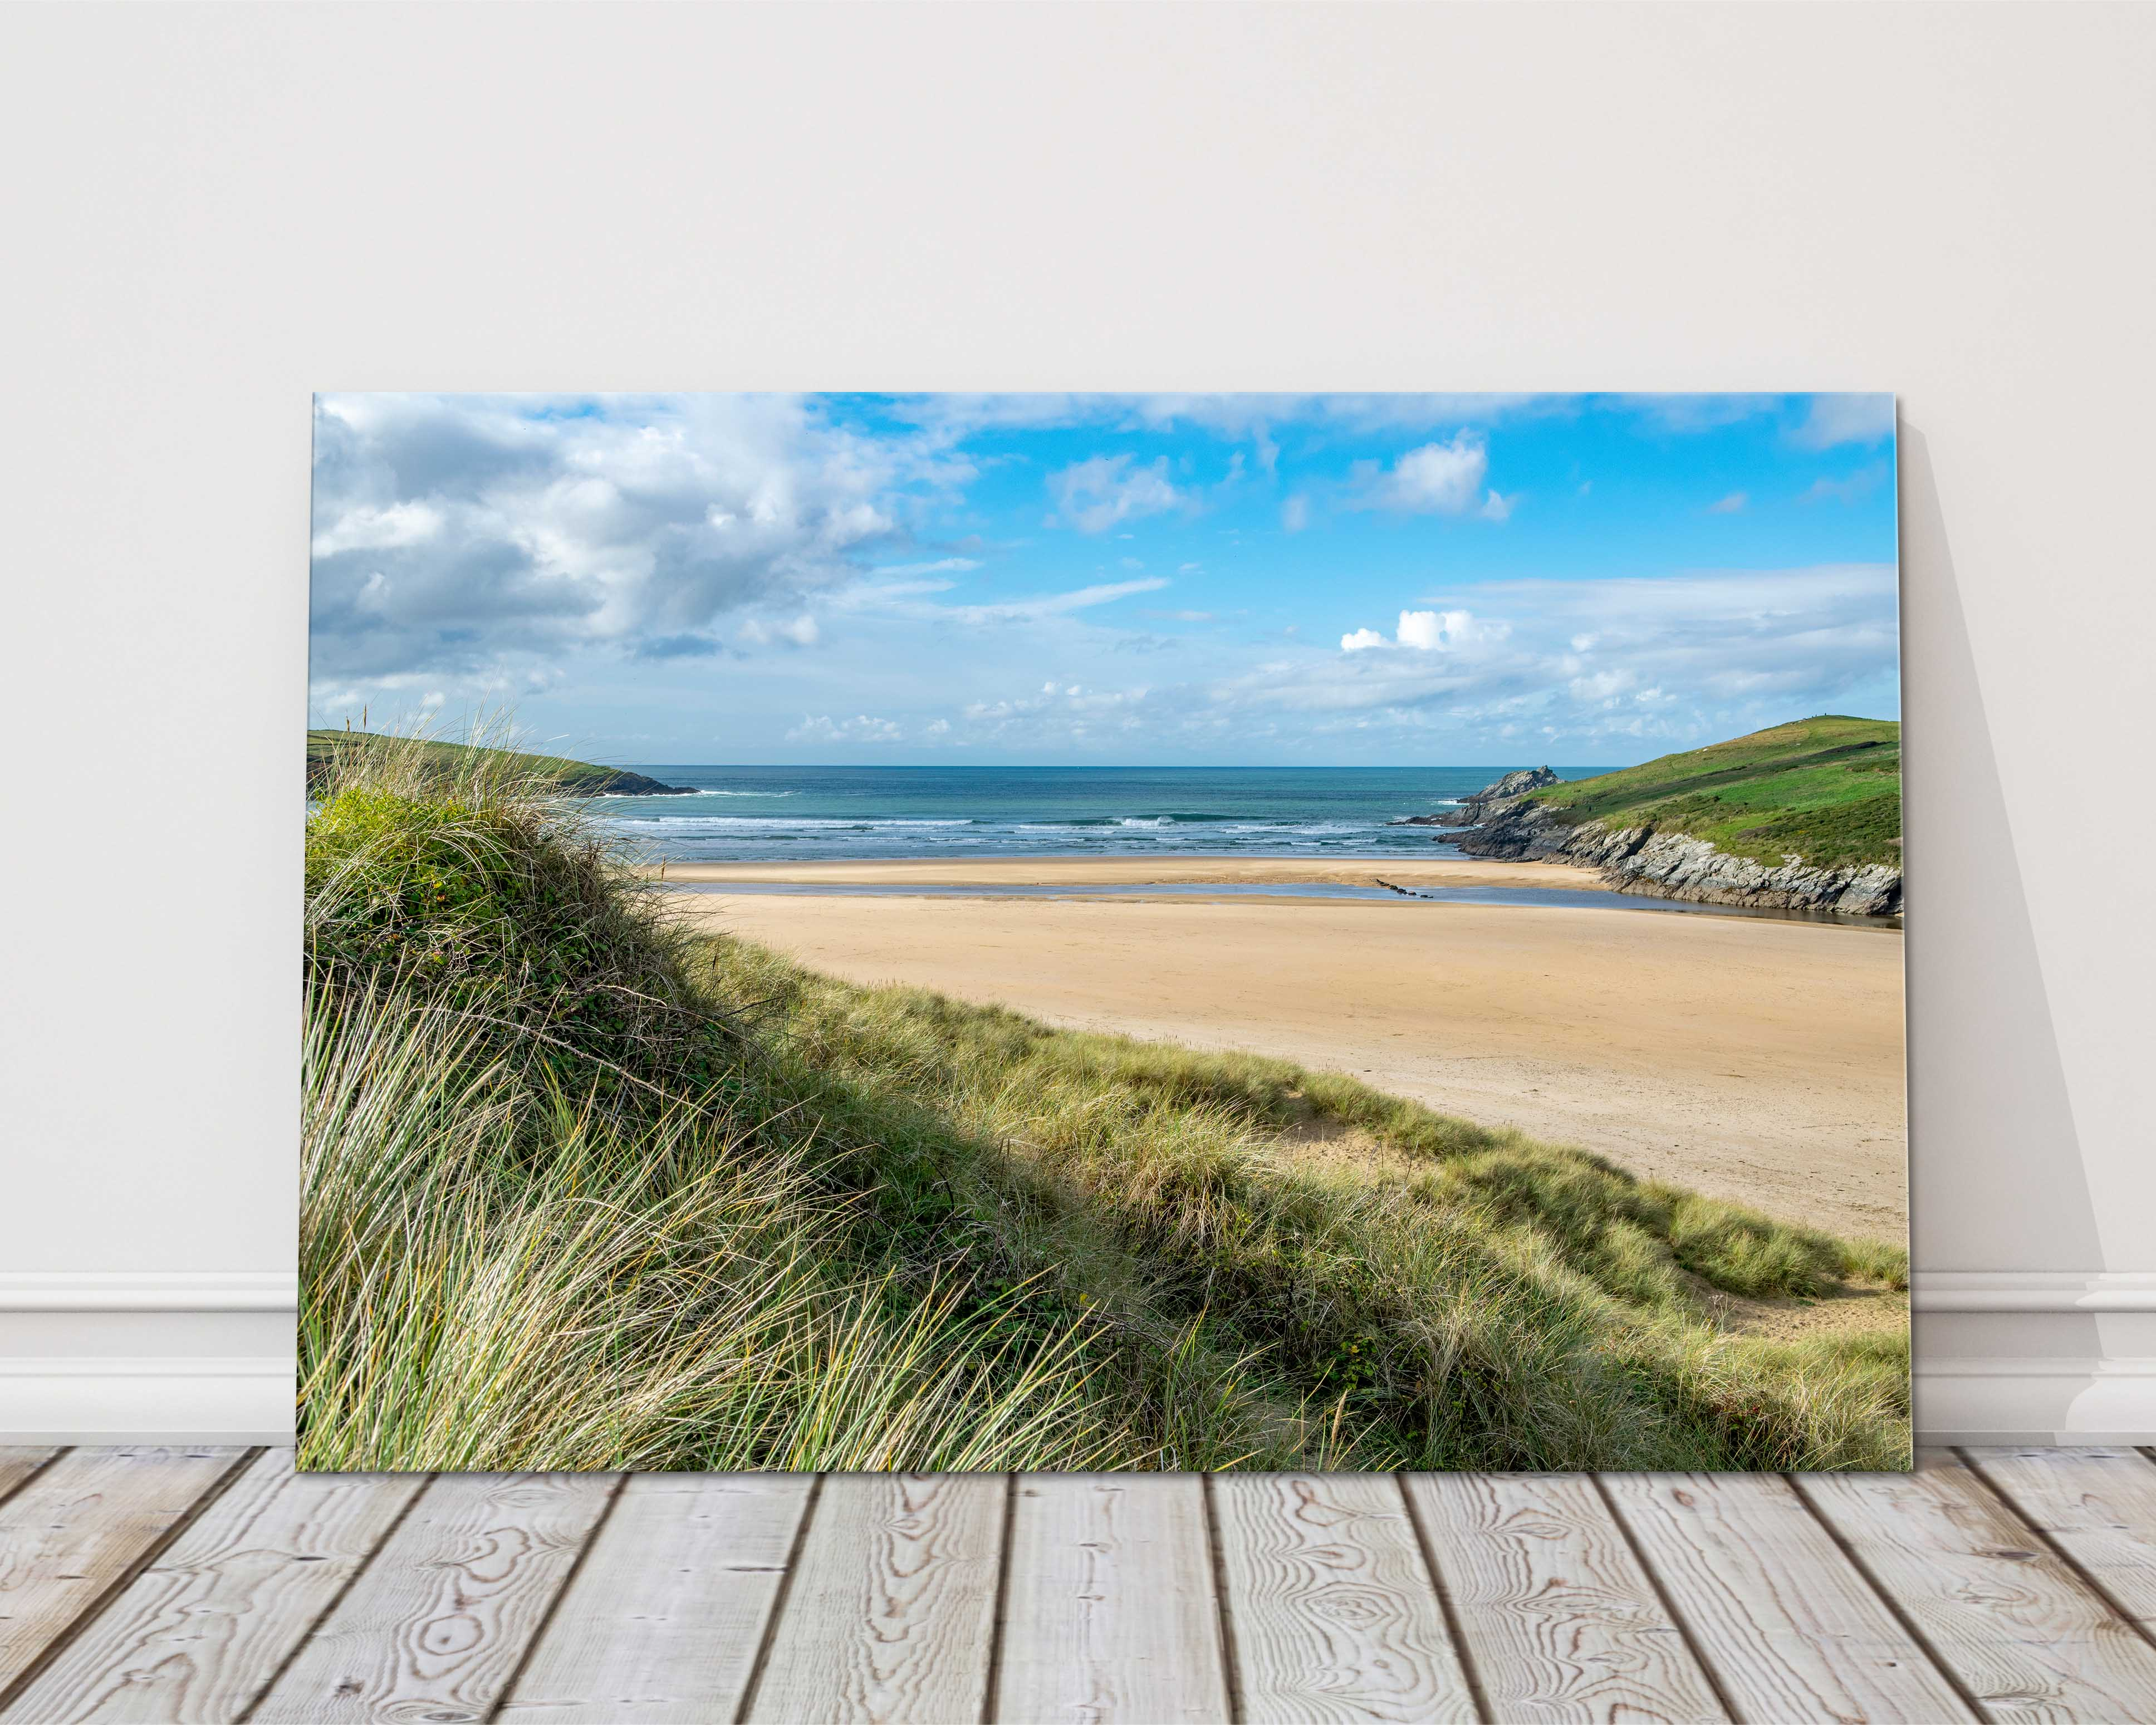 Crantock beach from cornwall canvas print framed picture wall art waves Newquay